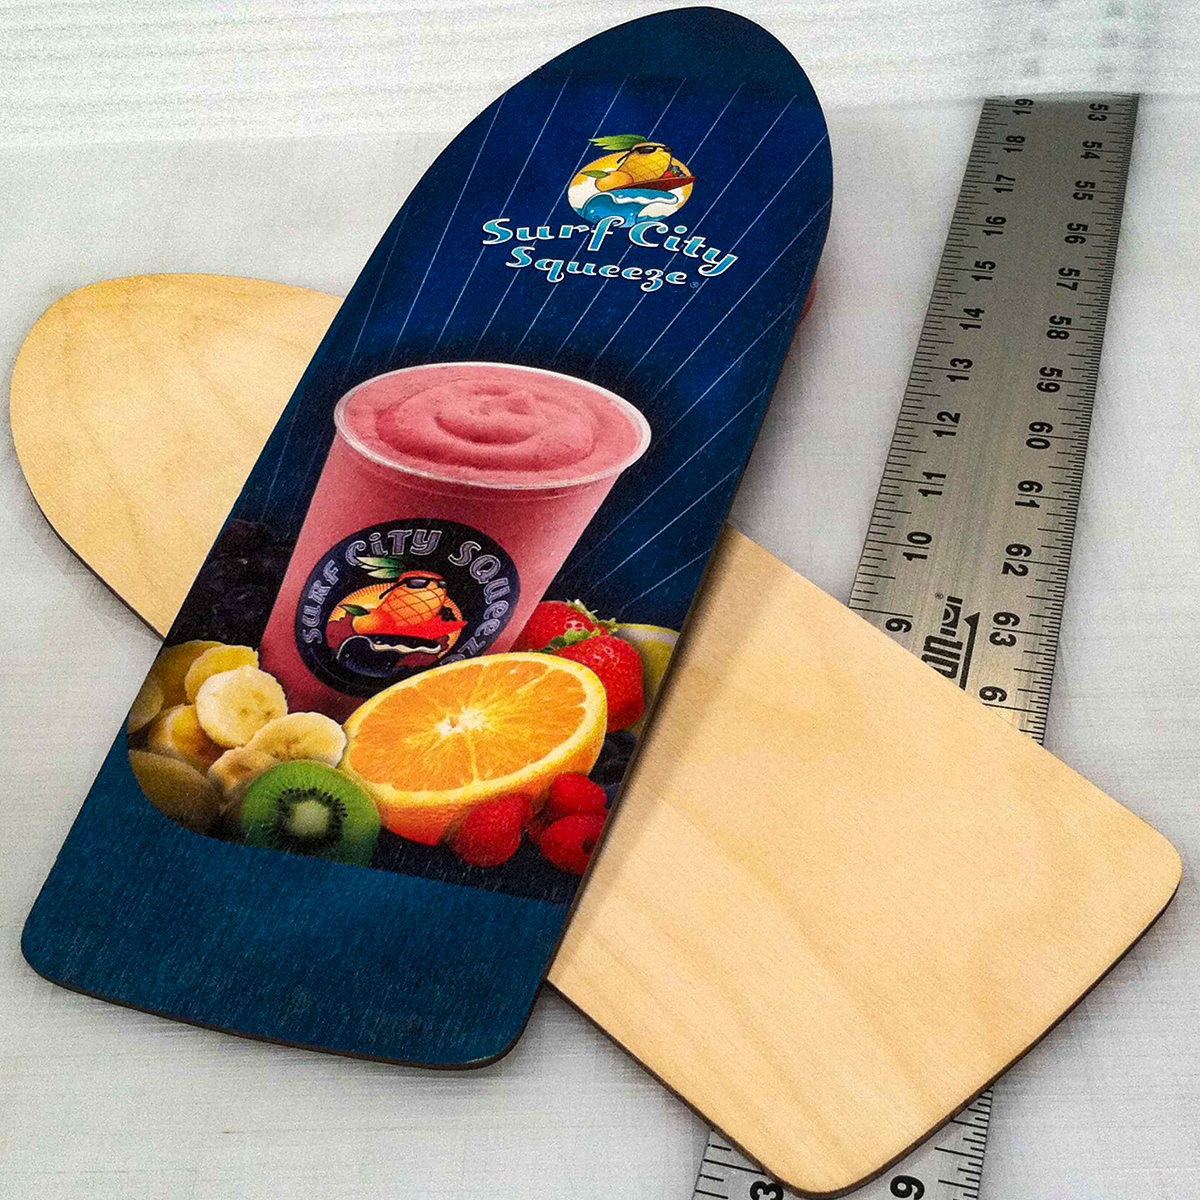 Small Board Custom Printing Services & online printing reviews